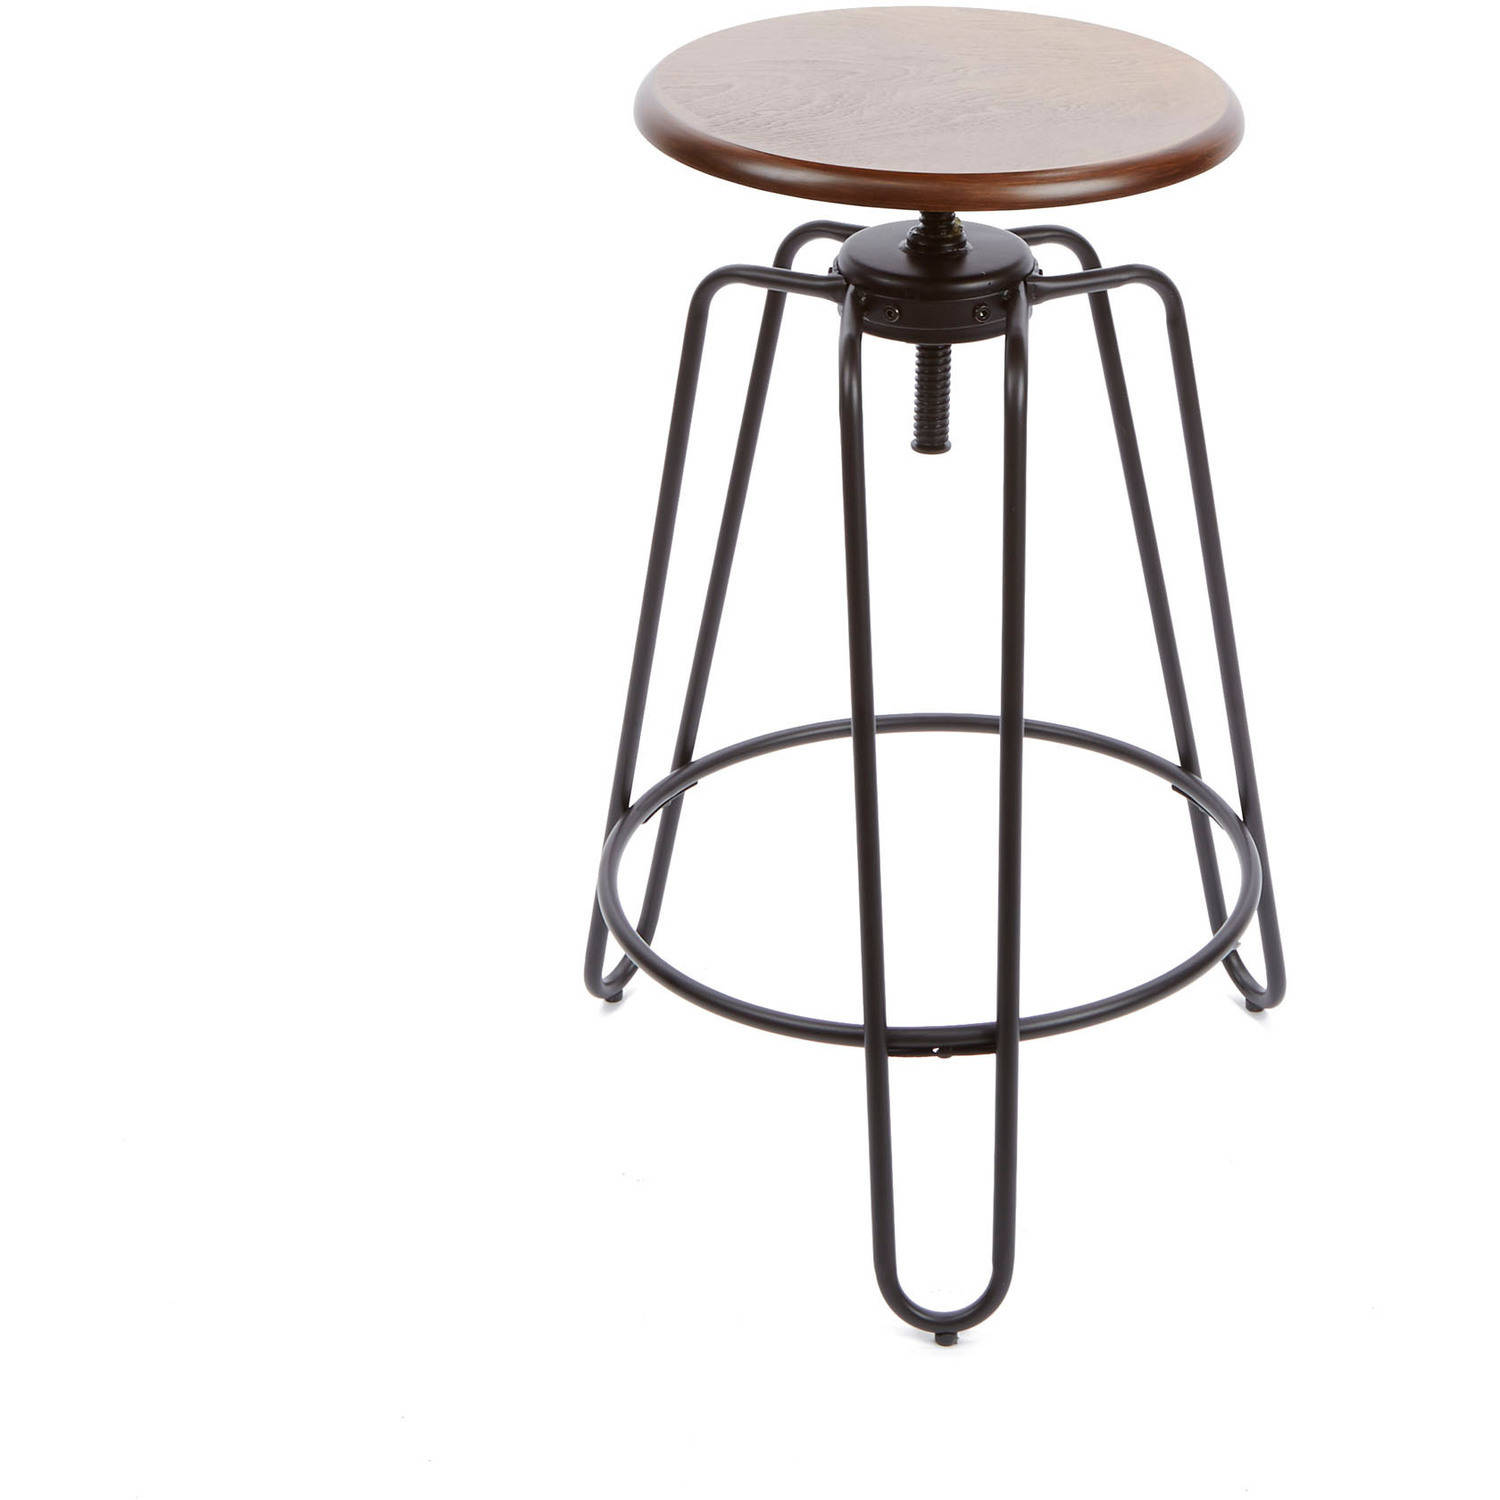 Better Homes U0026 Gardens Adjustable Height Spin Stool   Walmart.com